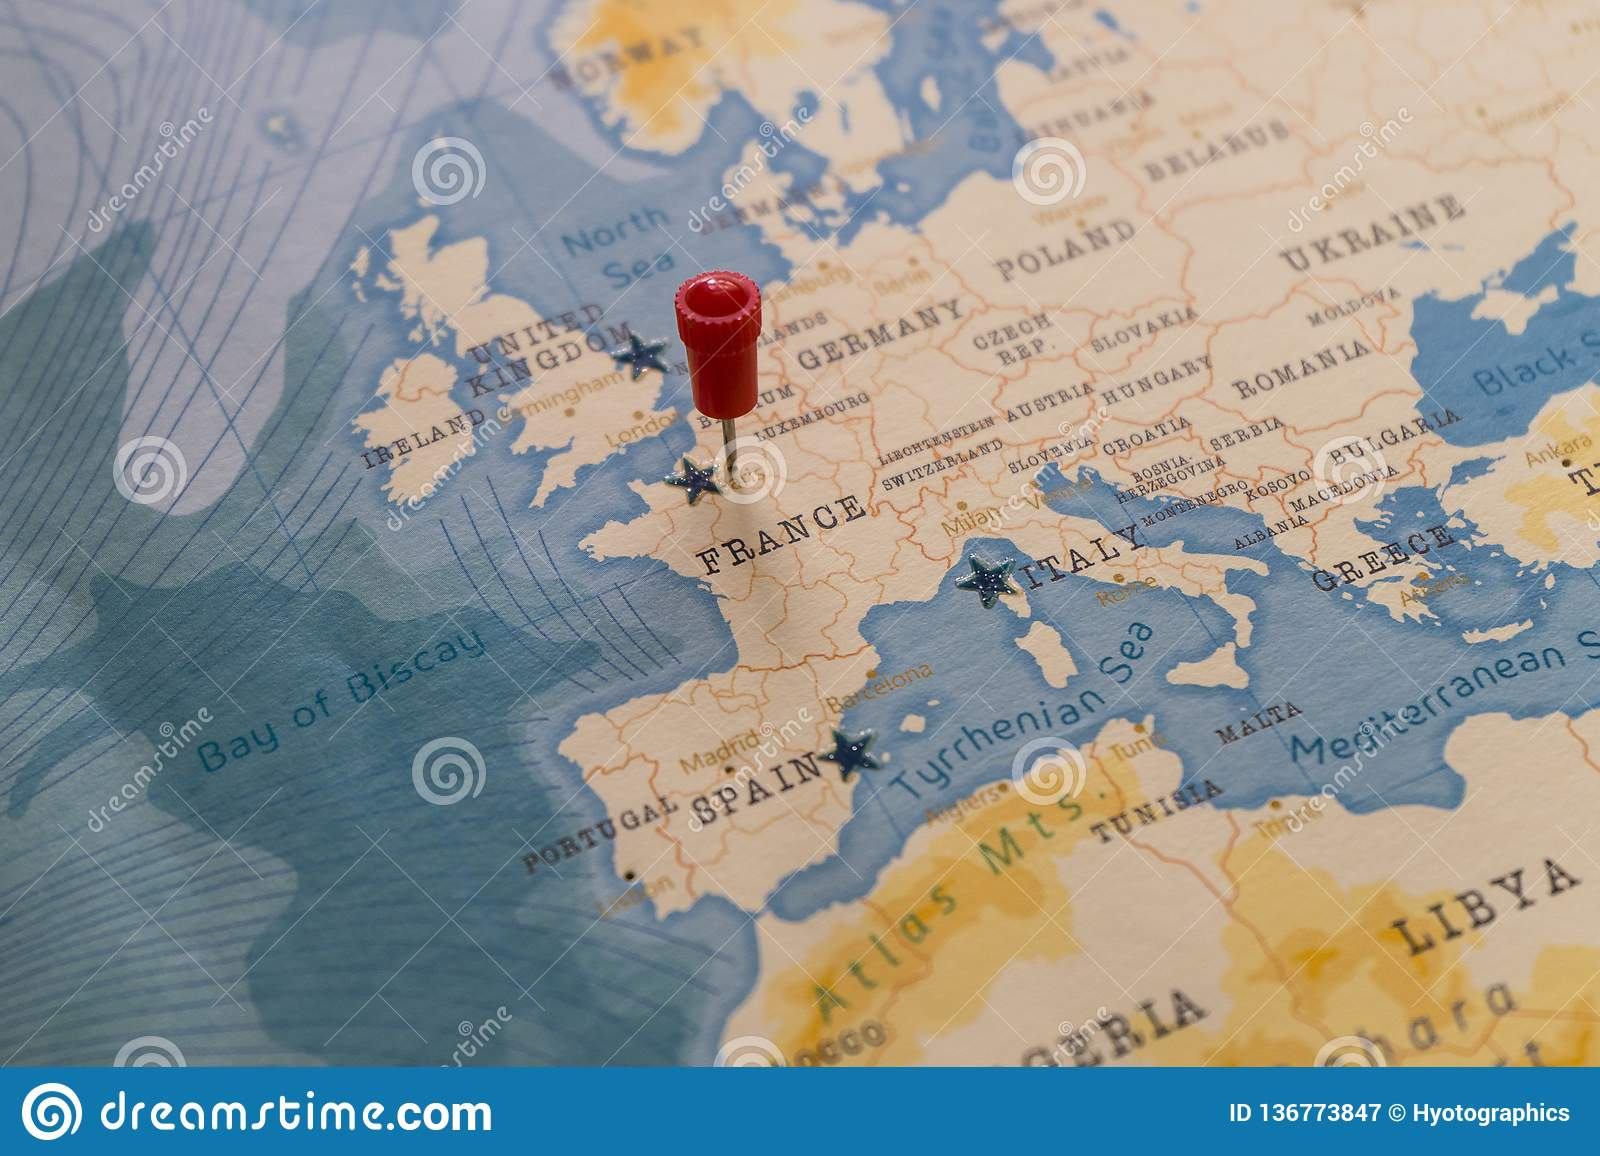 A Pin On Paris, France In The World Map Stock Image - Image of ...